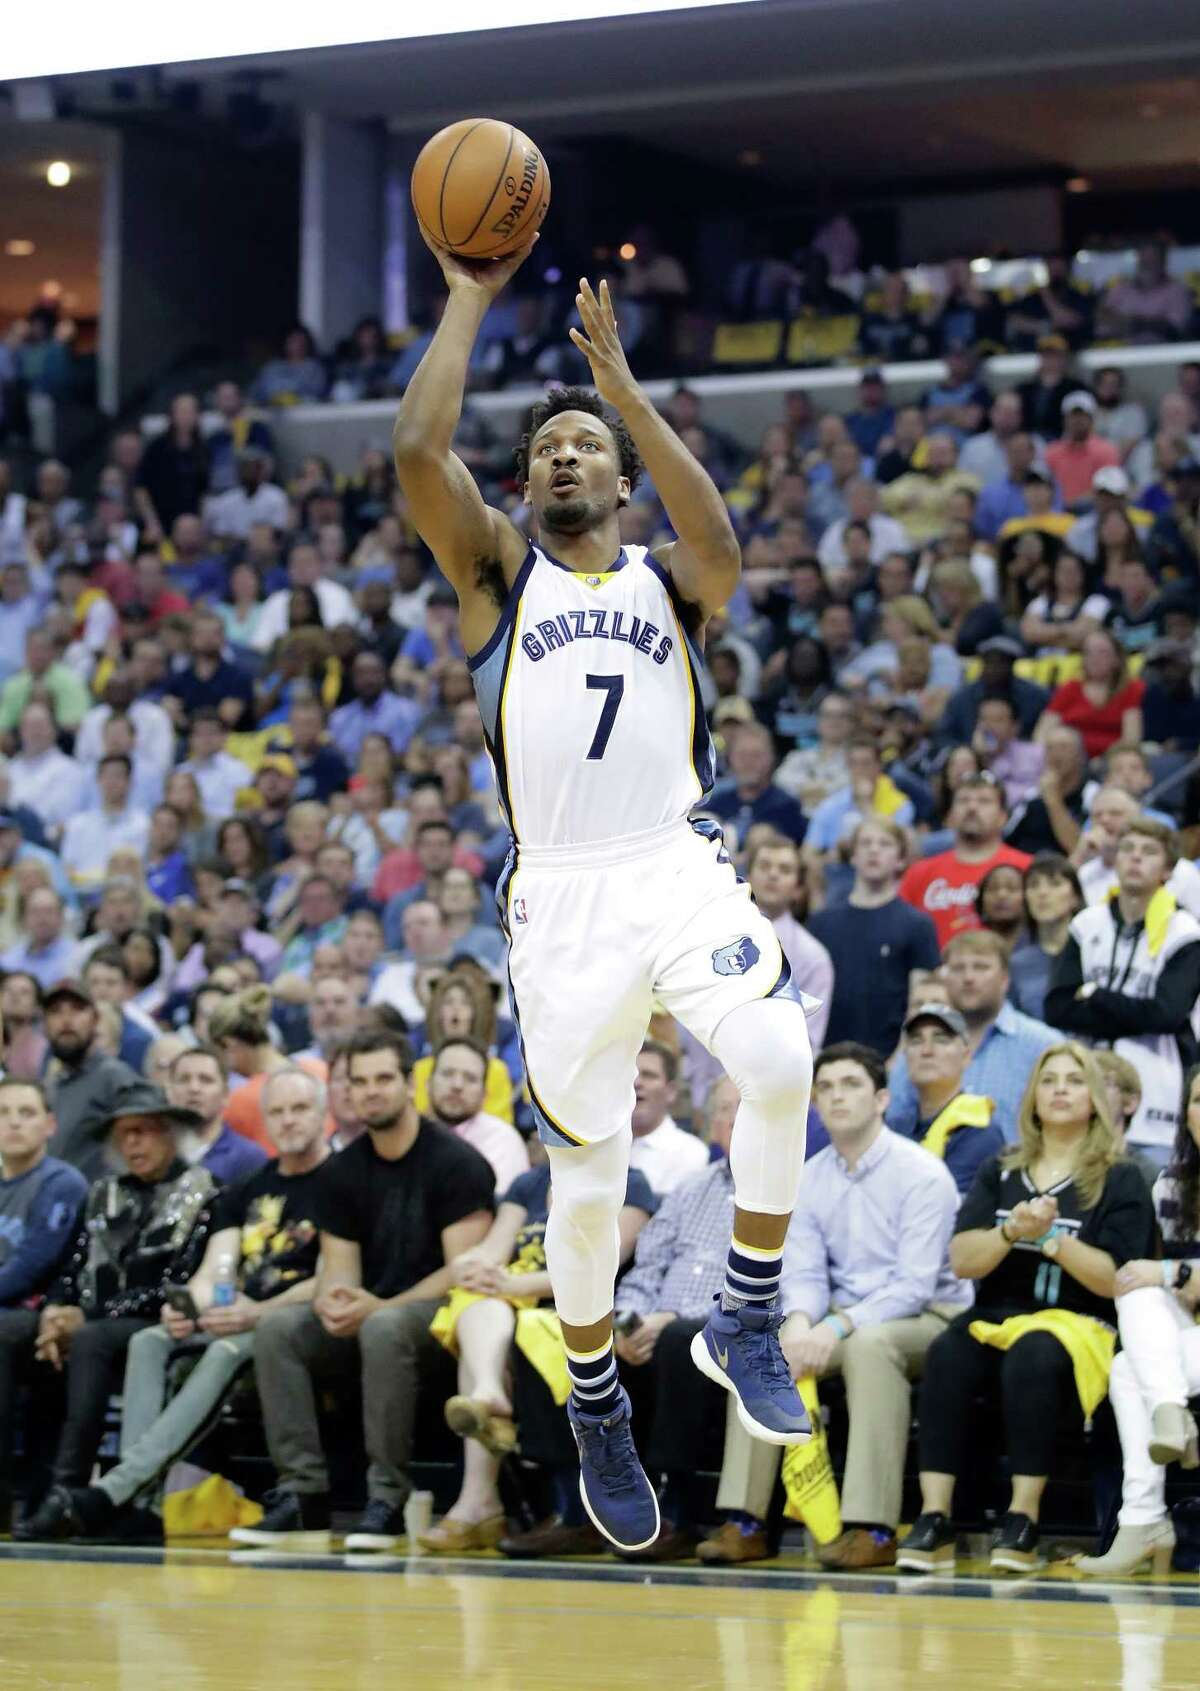 MEMPHIS, TN - APRIL 20: Wayne Selden Jr. #7 of the Memphis Grizzlies shoots the ball against the San Antonio Spurs in game three of the Western Conference Quarterfinals during the 2017 NBA Playoffs at FedExForum on April 20, 2017 in Memphis, Tennessee. NOTE TO USER: User expressly acknowledges and agrees that, by downloading and or using this photograph, User is consenting to the terms and conditions of the Getty Images License Agreement